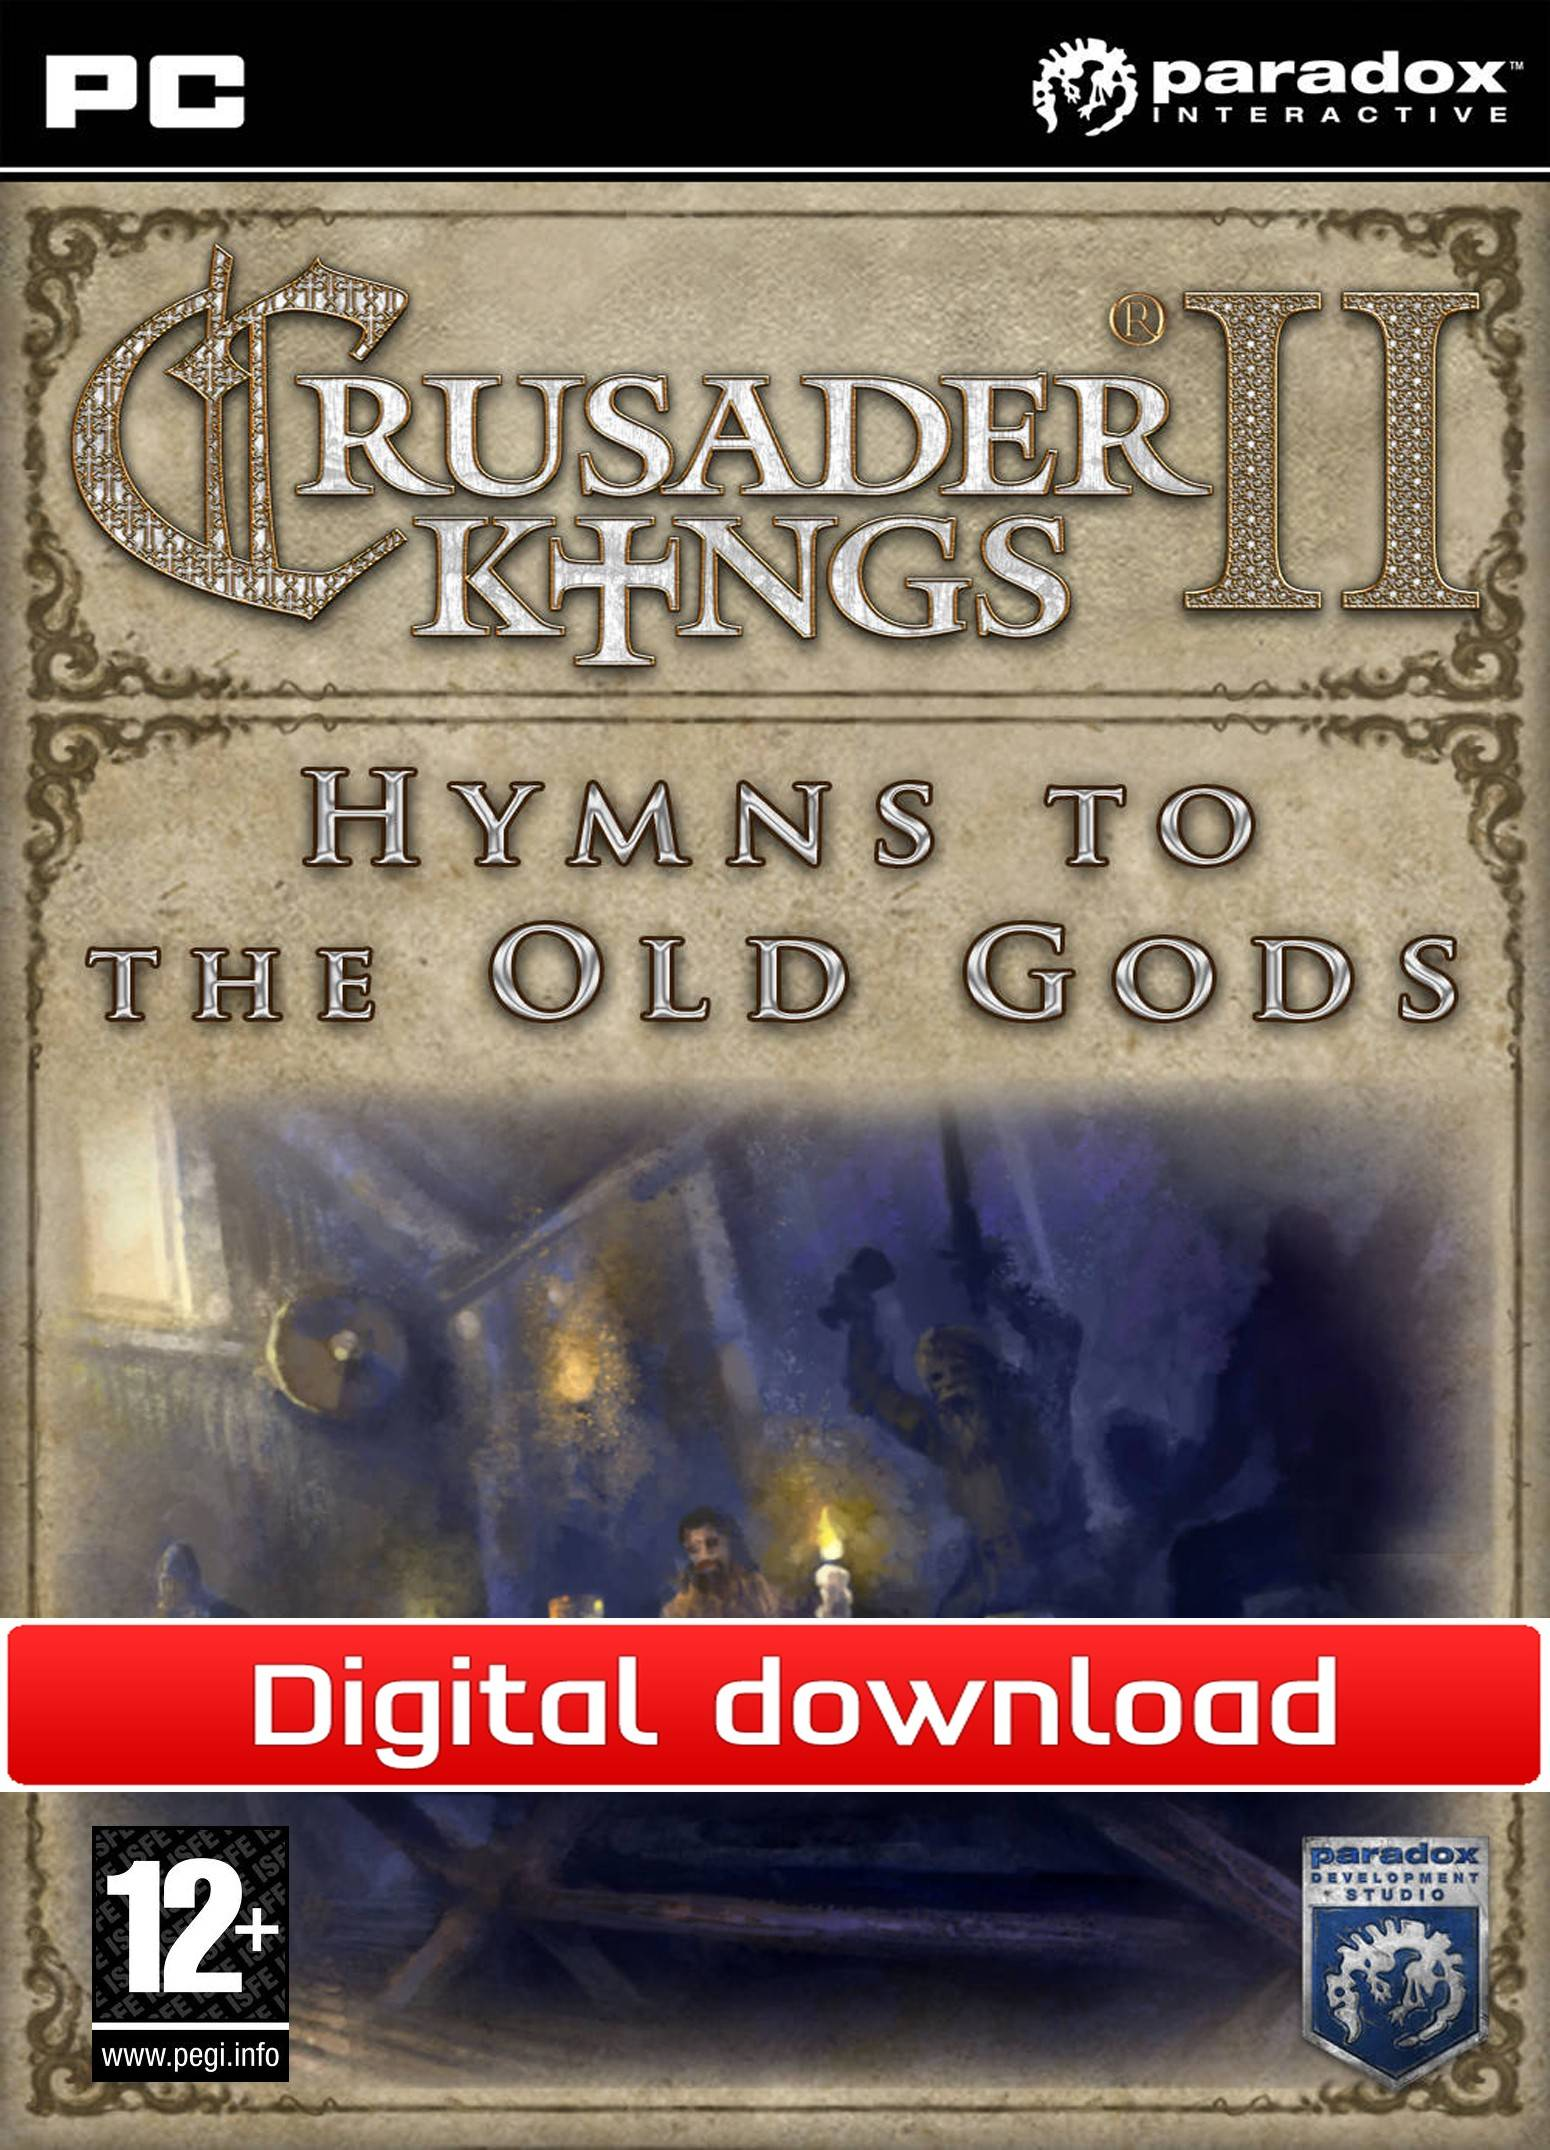 Paradox Crusader Kings II: Hymns to the Old Gods (Downl)